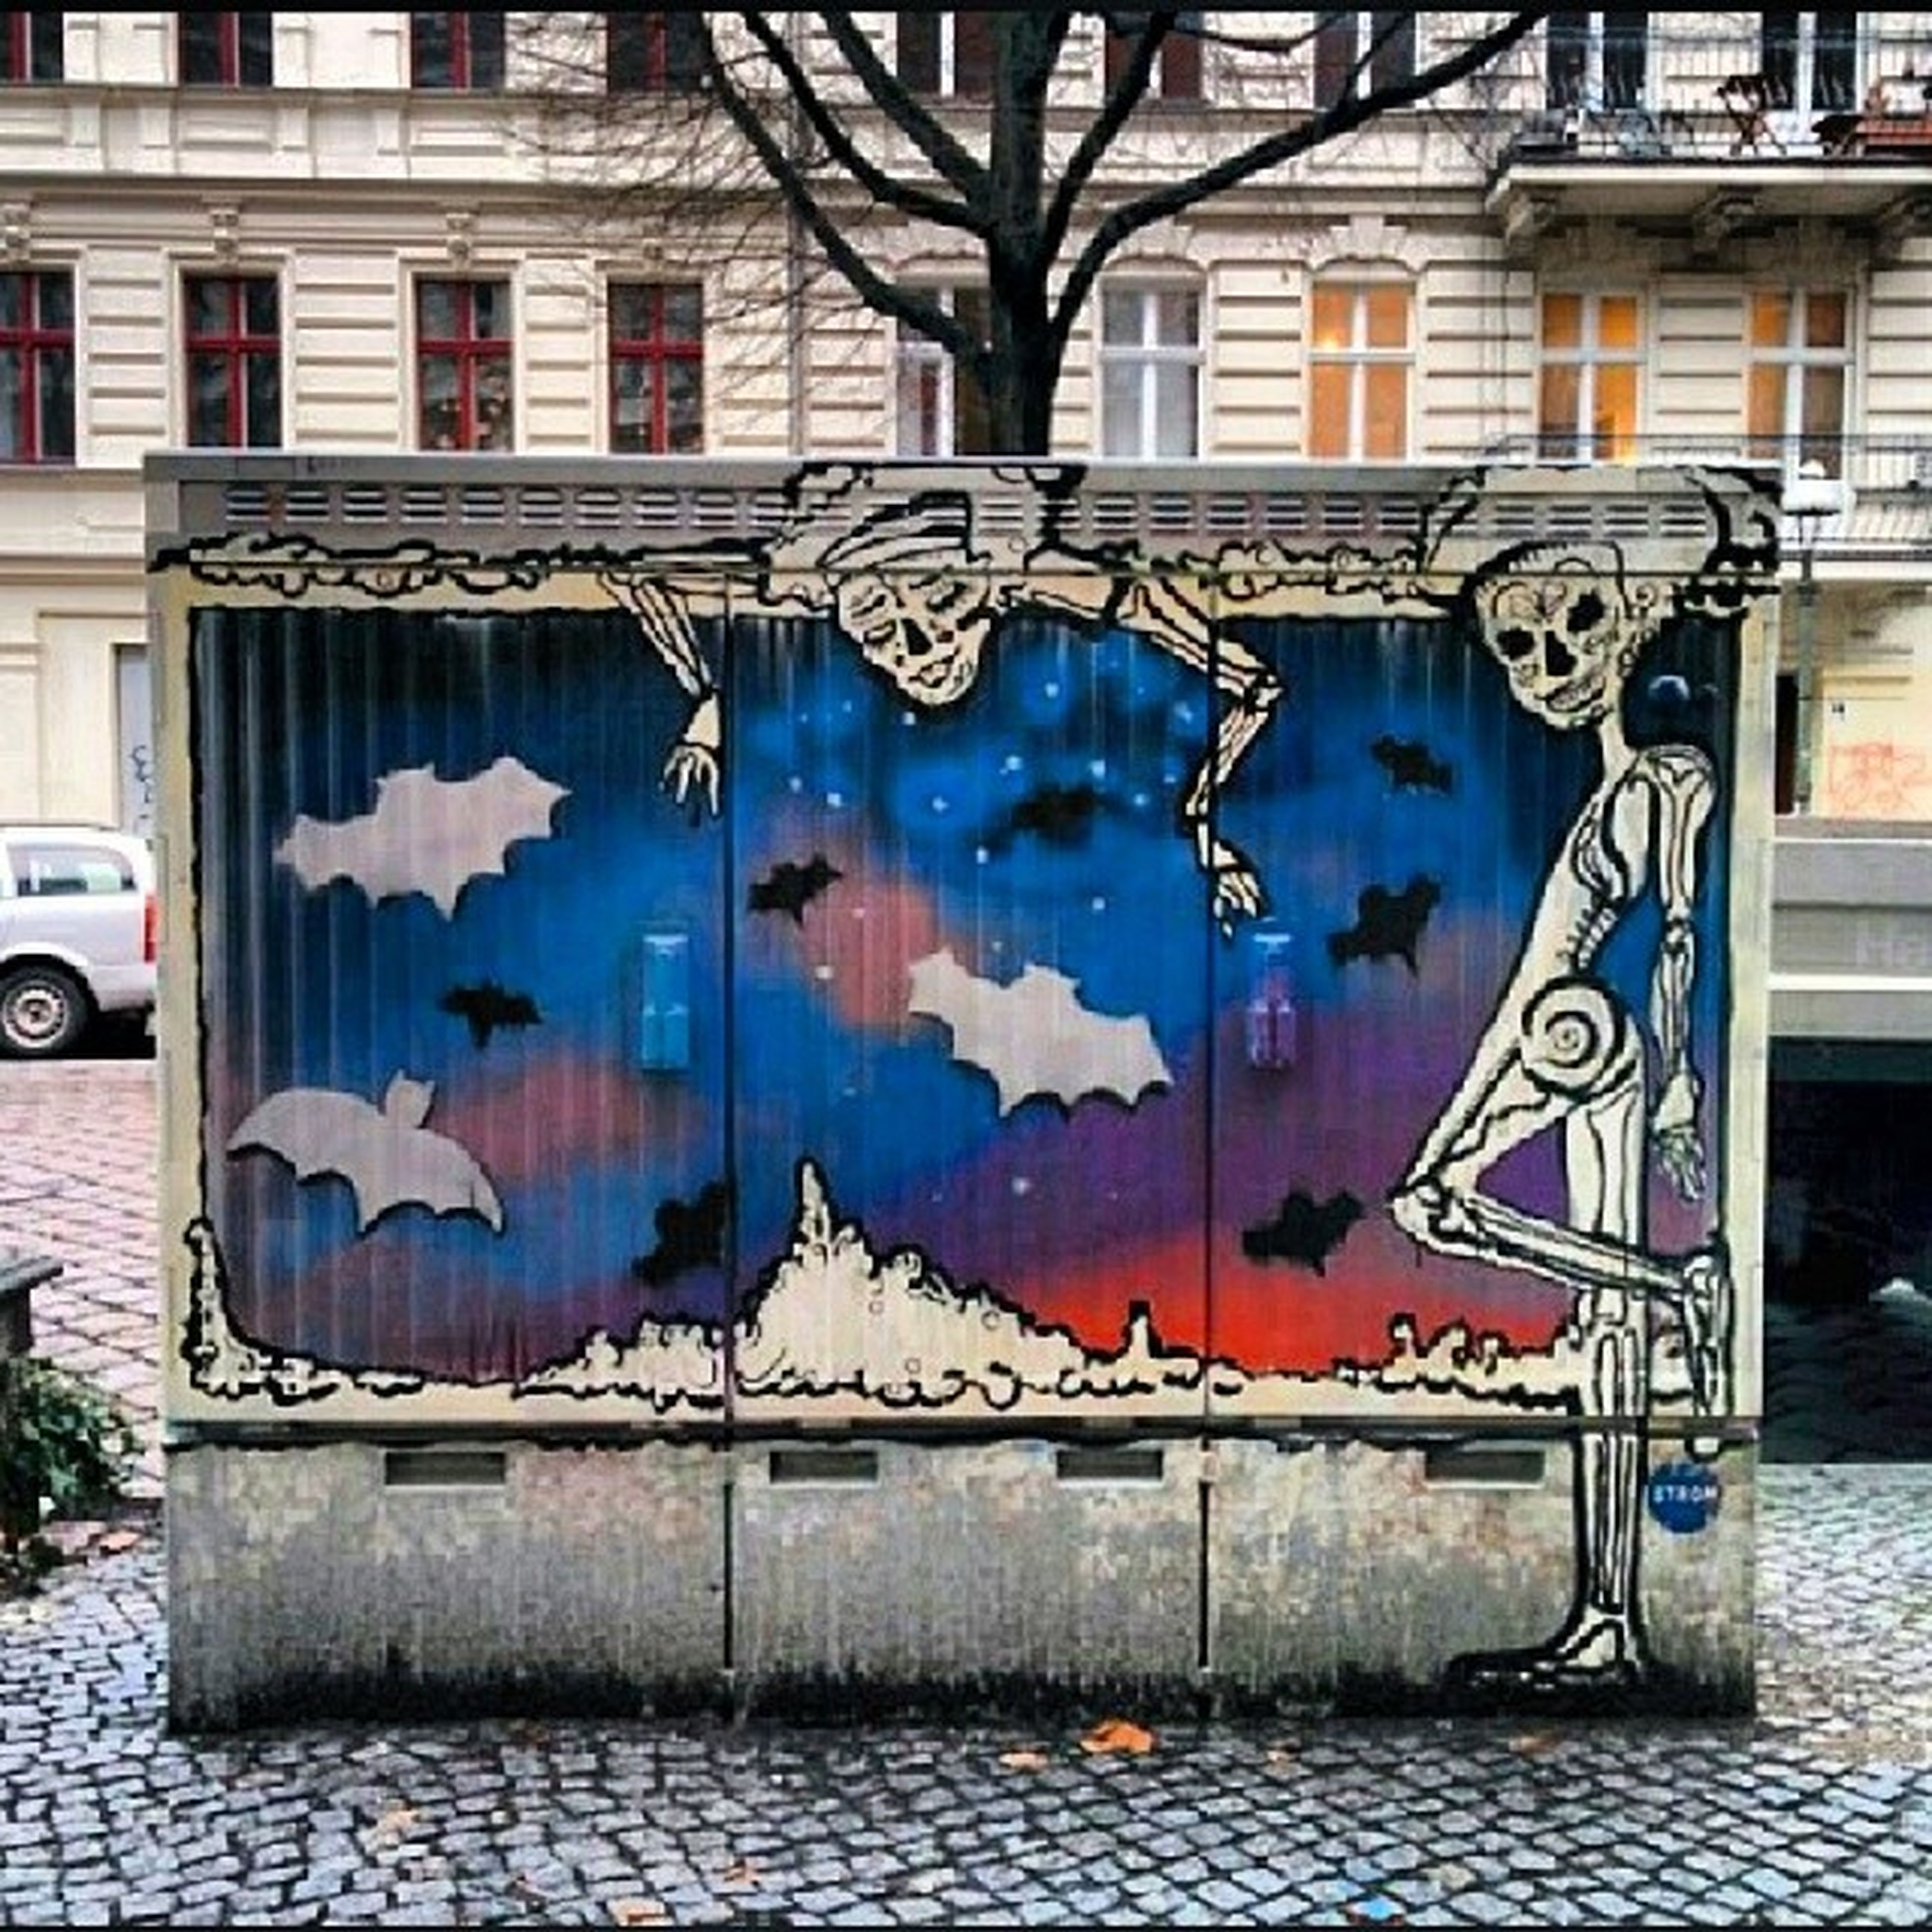 graffiti, building exterior, architecture, built structure, art, art and craft, creativity, wall - building feature, window, street art, multi colored, day, building, wall, outdoors, street, no people, house, city, vandalism